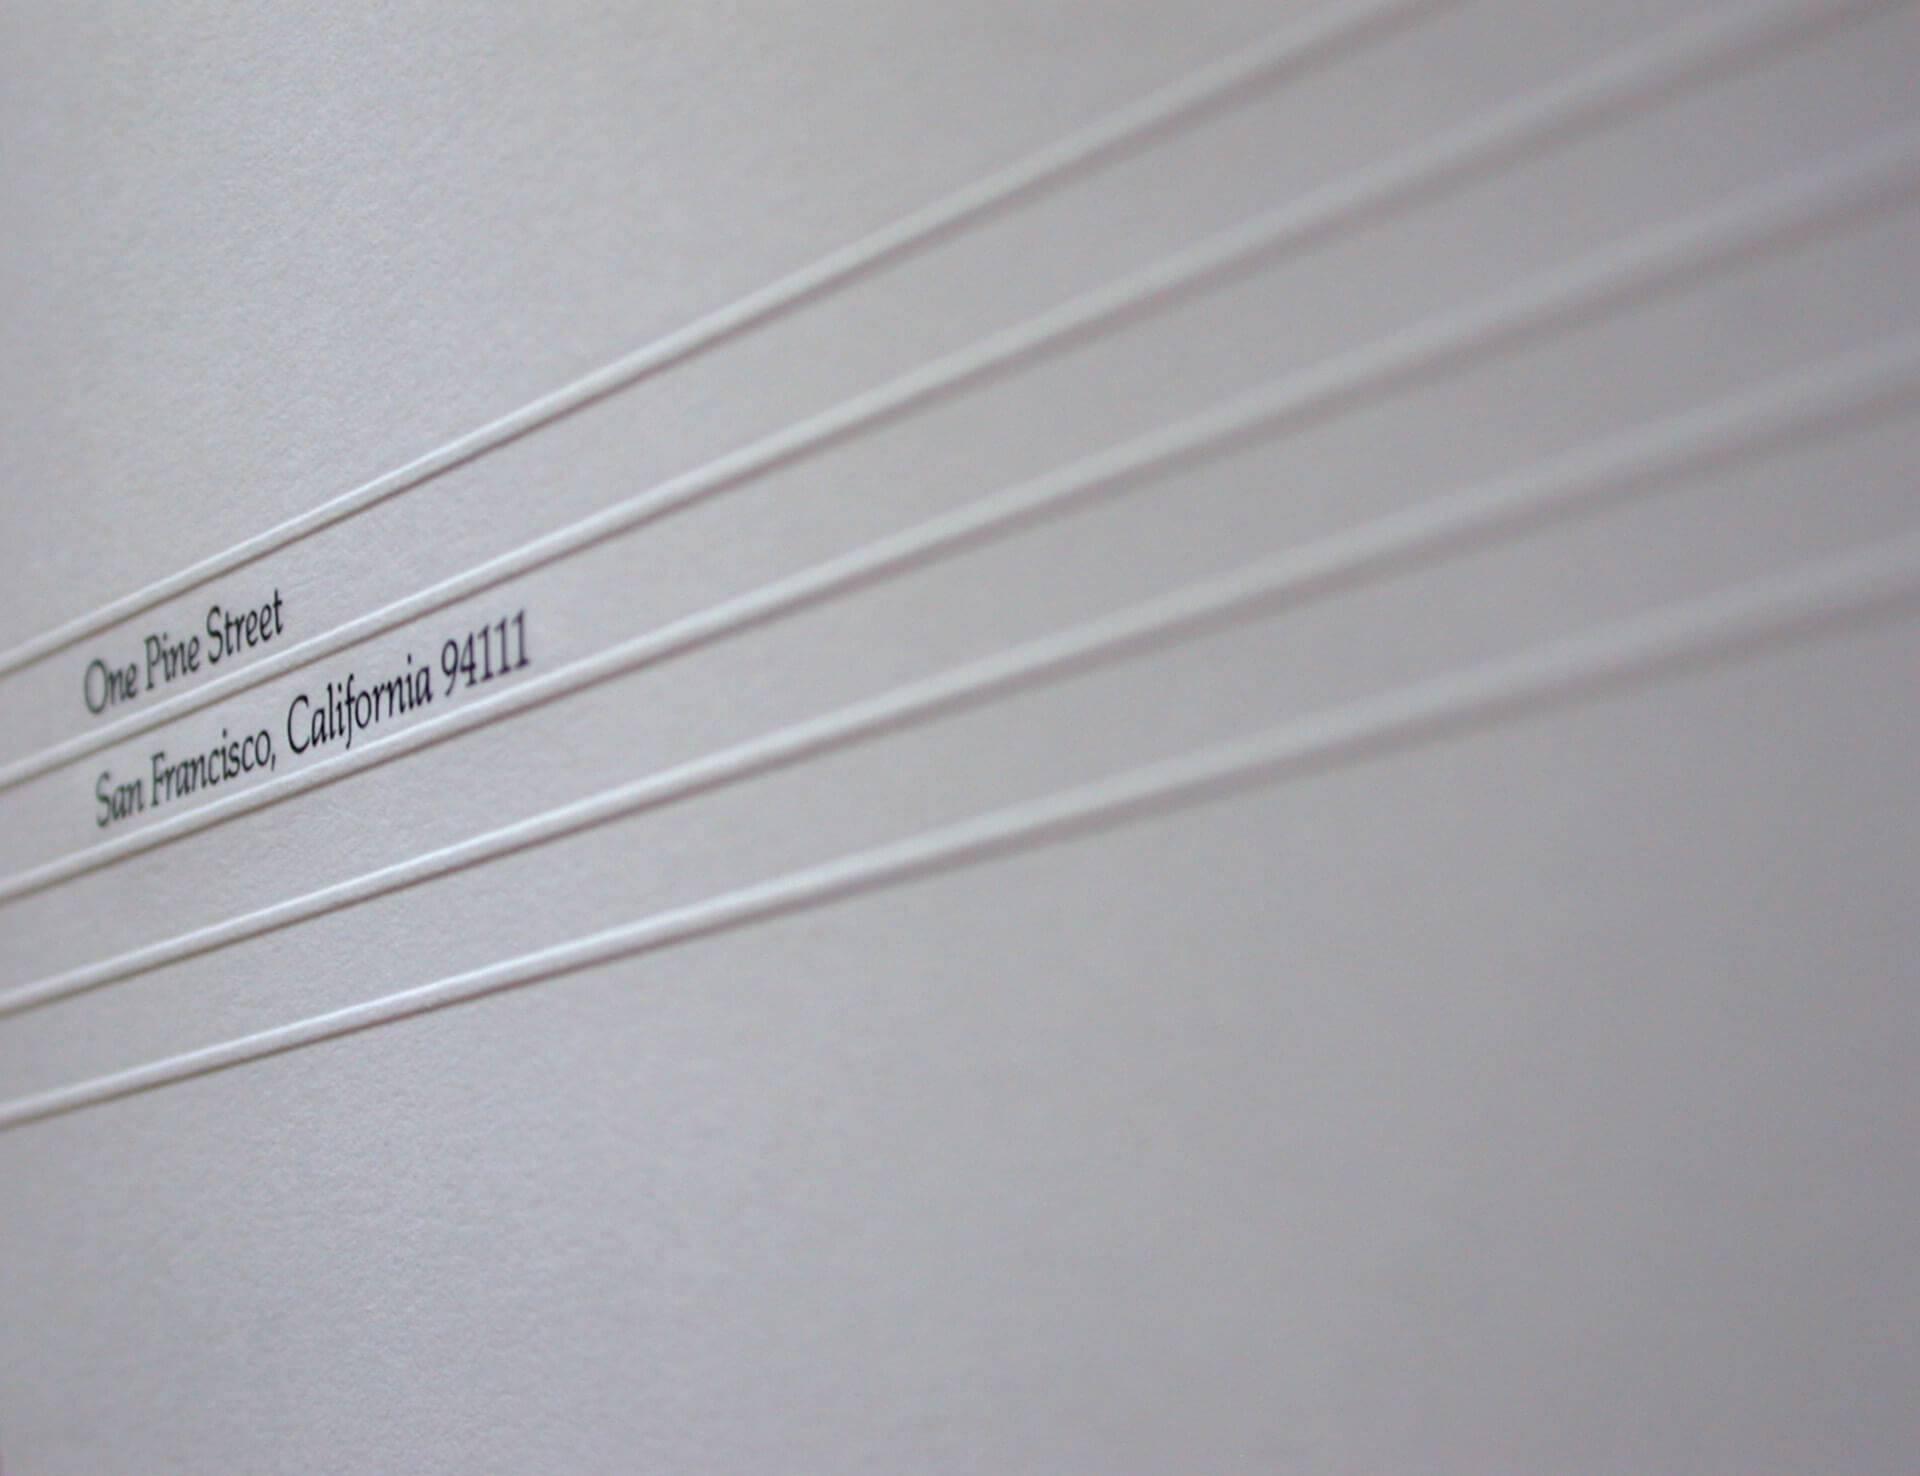 Letterhead with blind embossing and engraved steel embossing